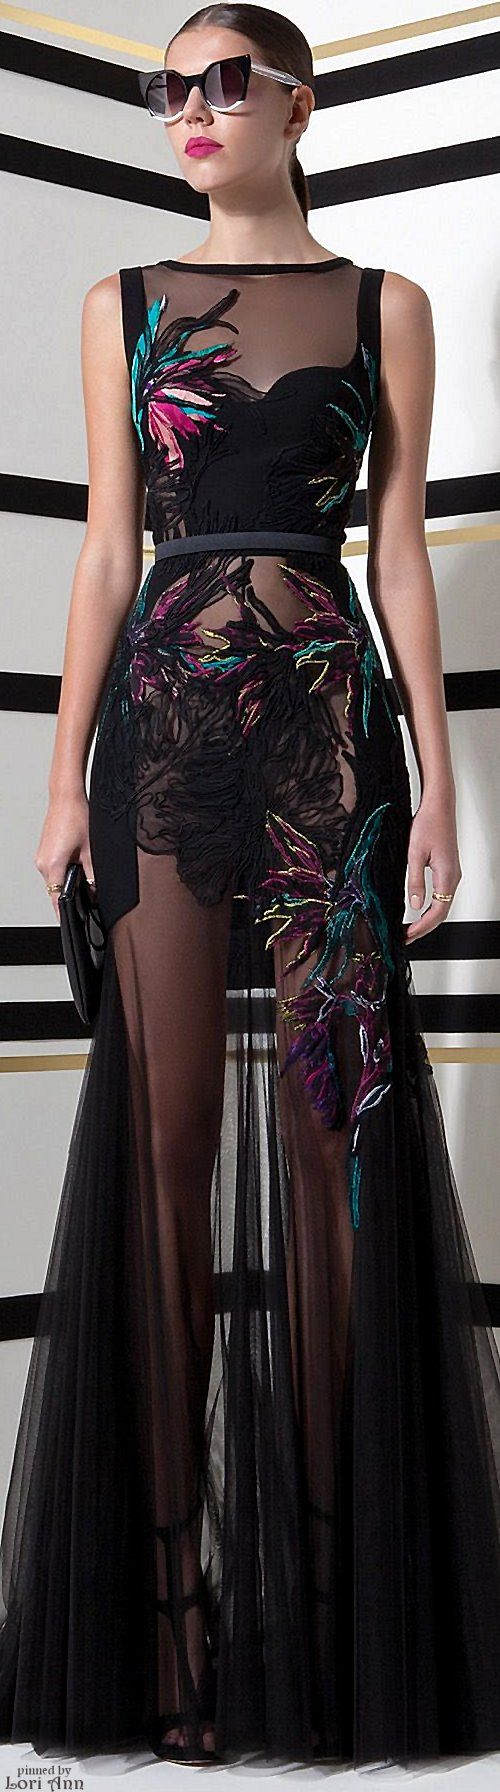 Basil Soda Spring 2016 RTW  OMG... Where can I wear this to? PTA meetings? Carpool? This is gorgeous!!